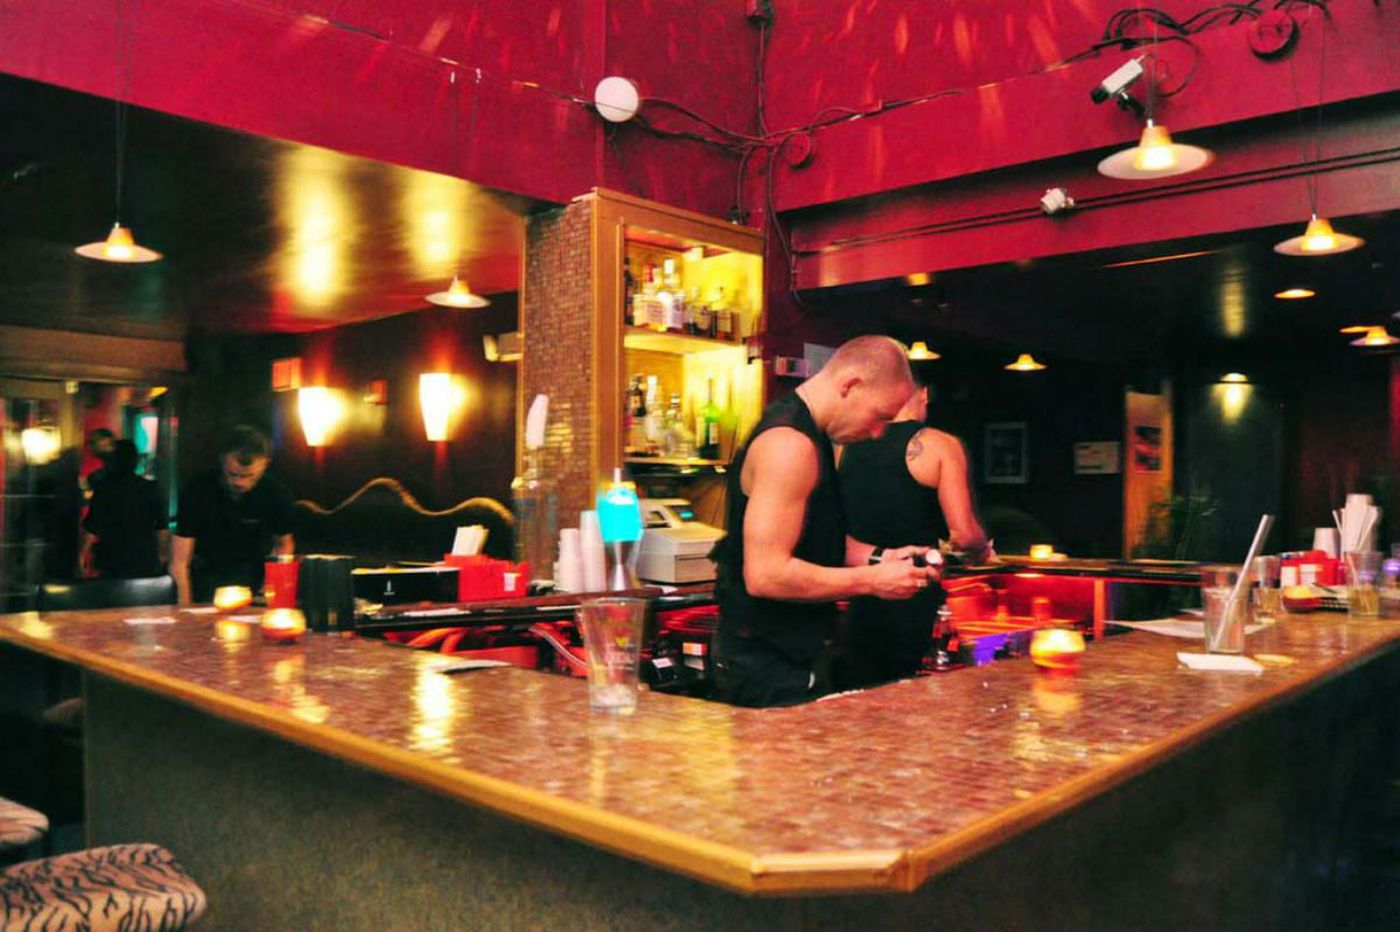 At Philly gay bar ICandy where owner used N-word, efforts to welcome people of color draw ire